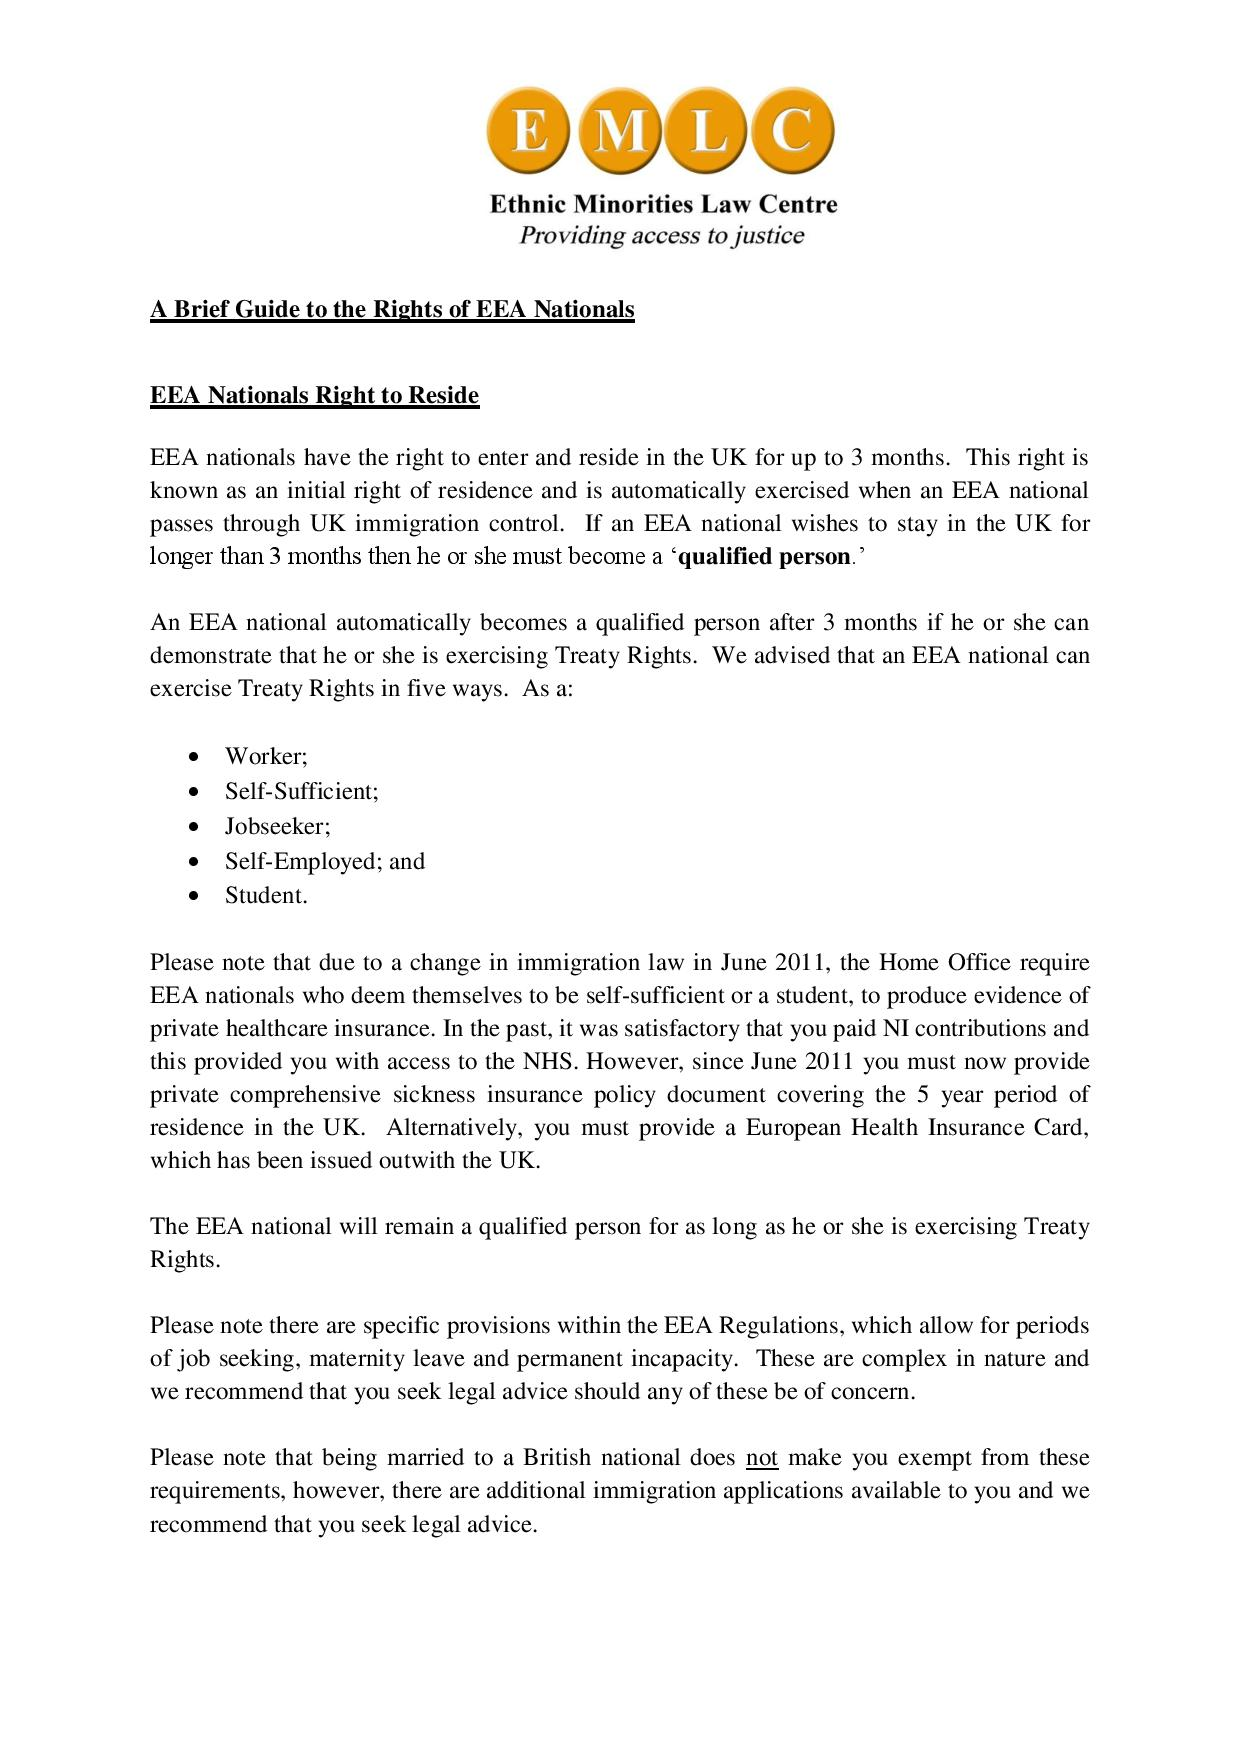 170315_LKB_A_Brief_Guide_to_the_Rights_of_EEA_Nationals-page-001.jpg